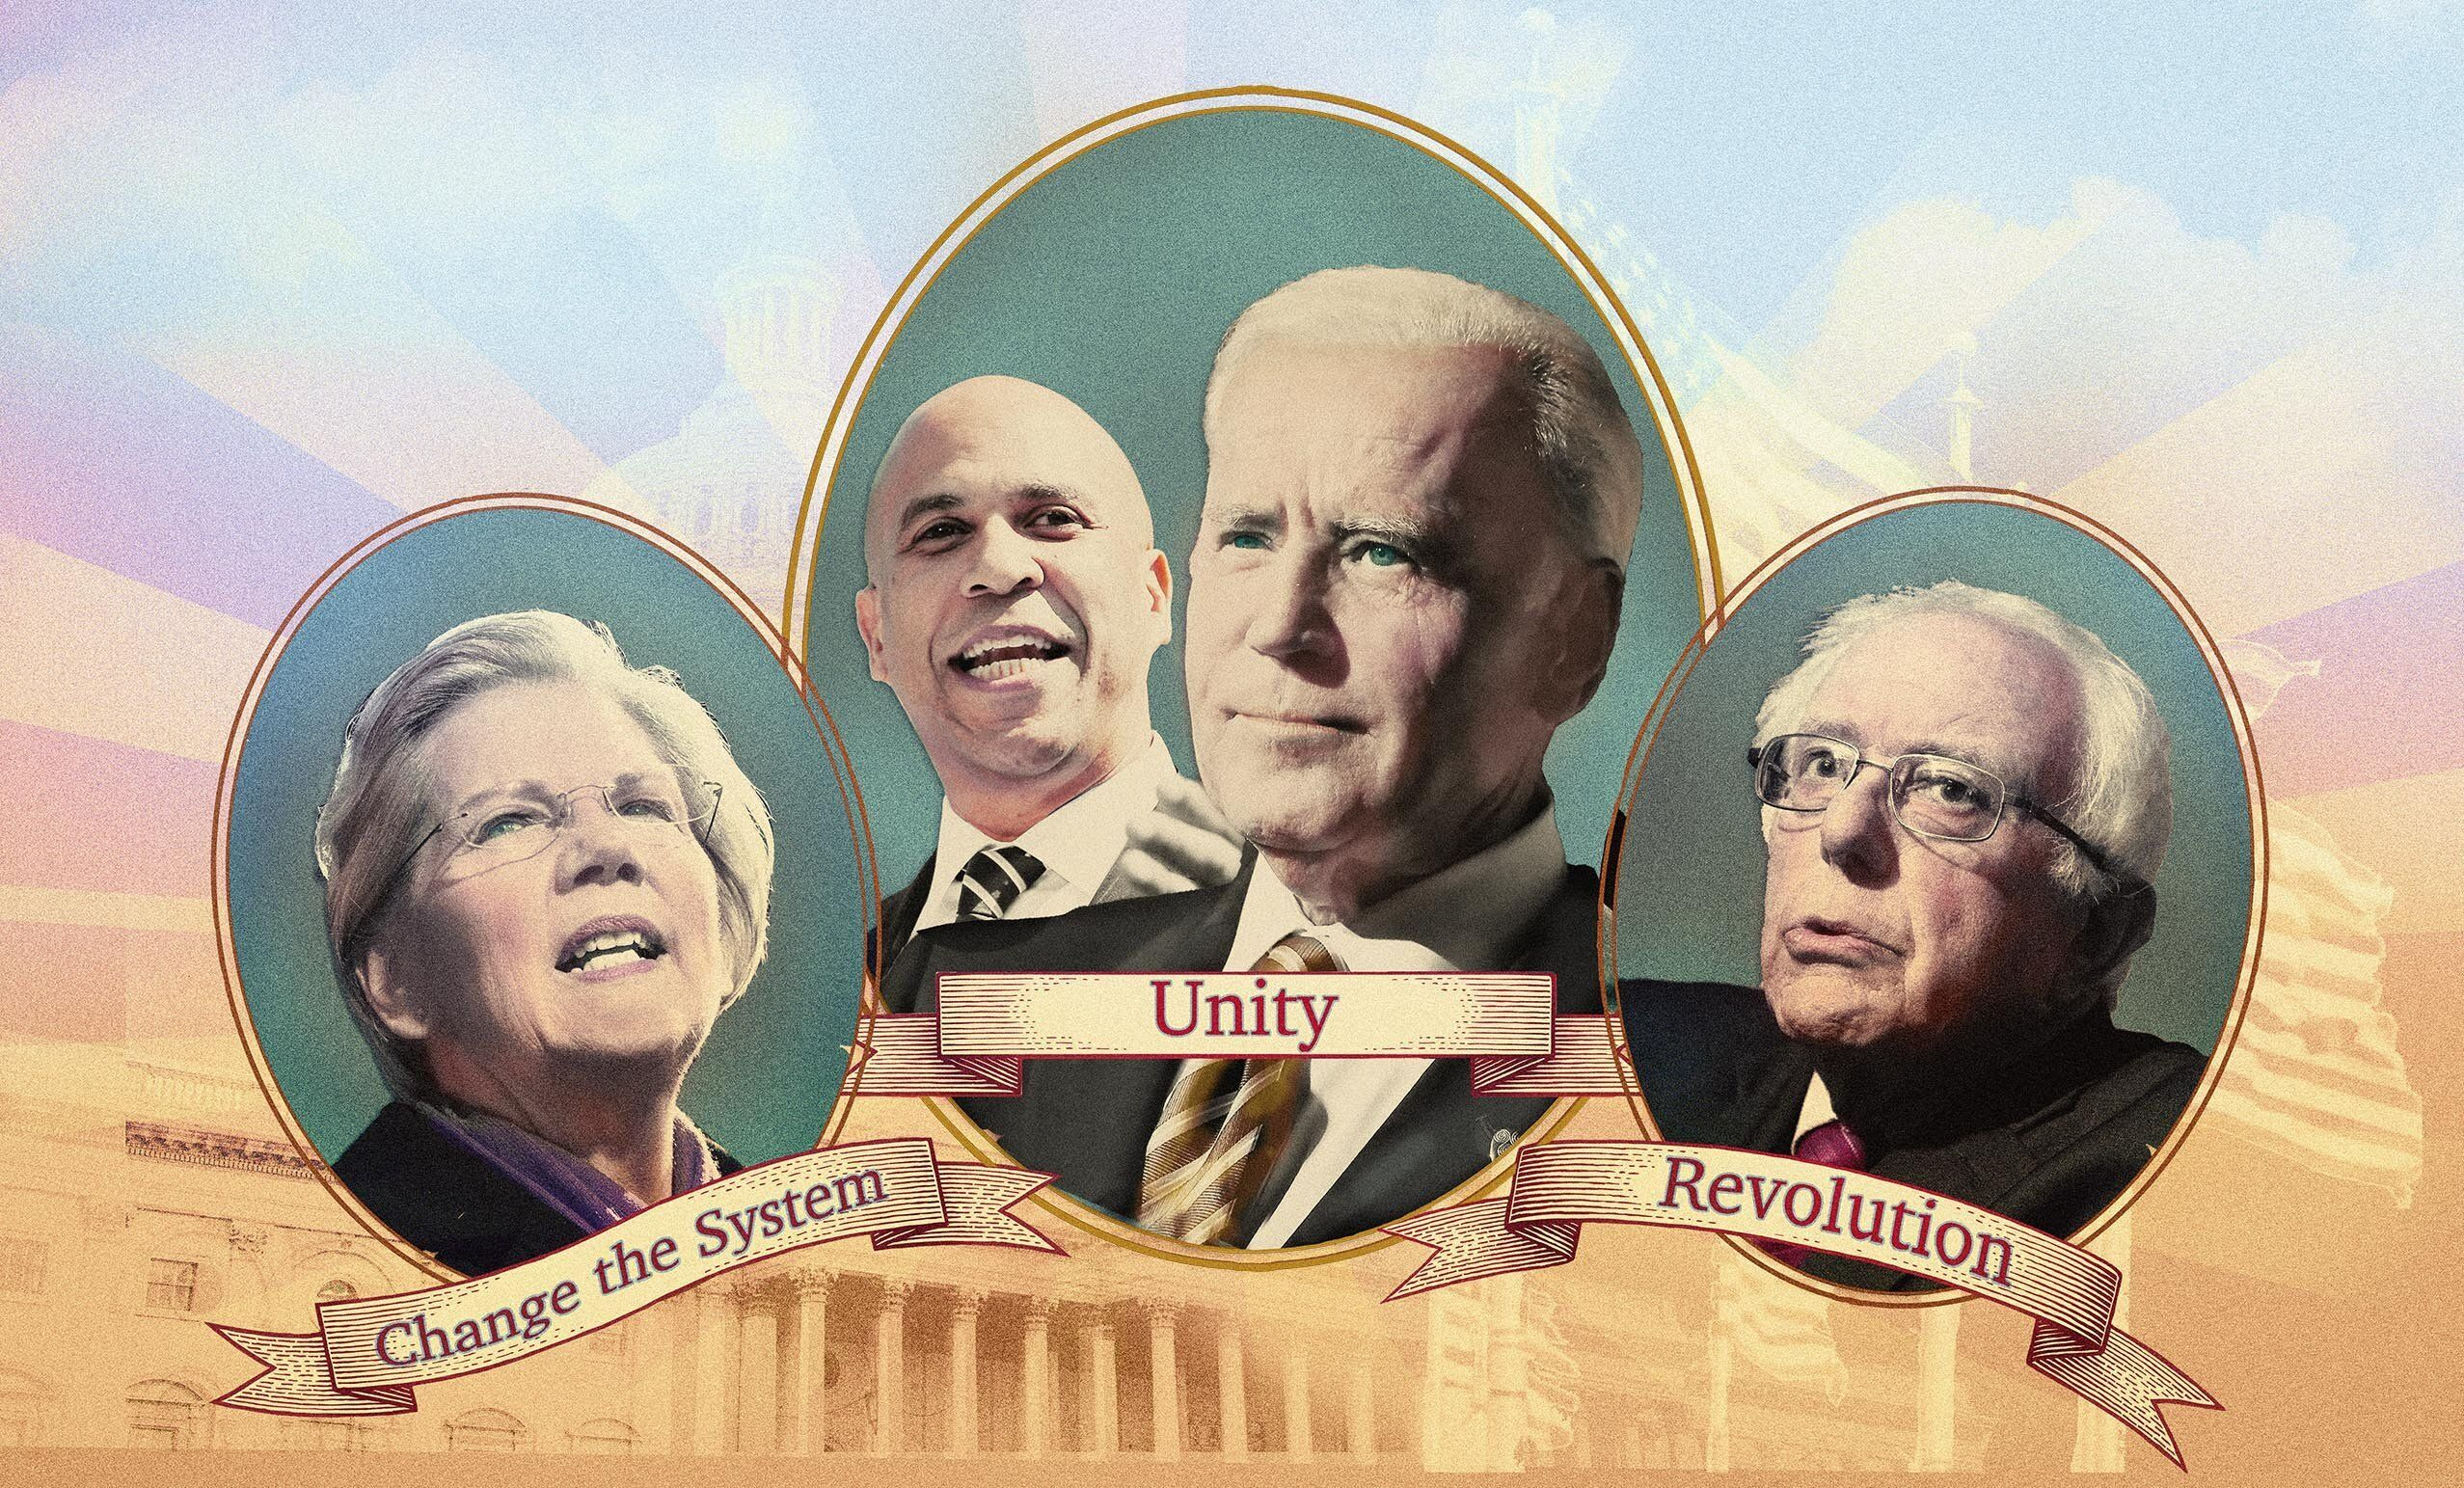 Warren the Fighter, Booker and Biden the Uniters, and Bernie the Revolutionary.